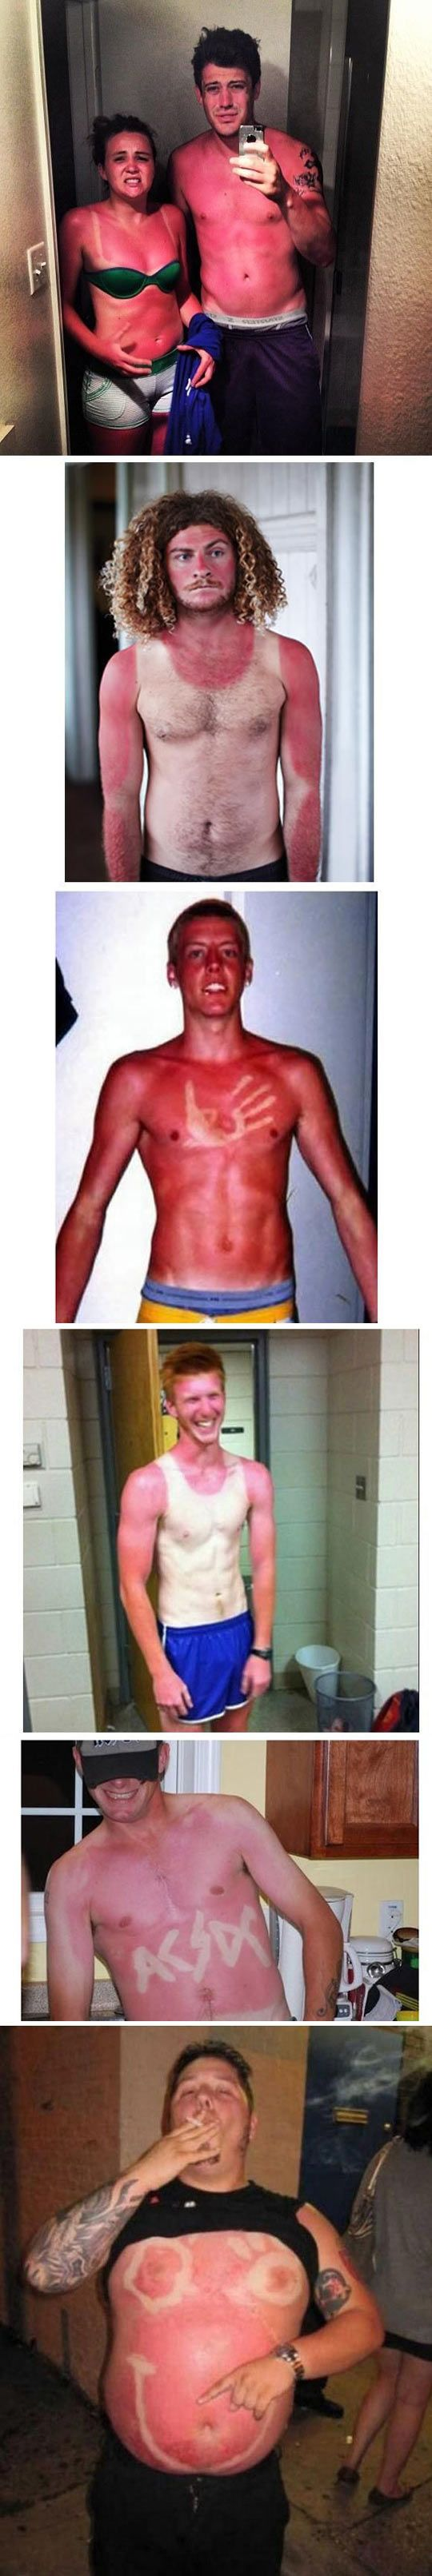 Pale people summer problems … the second guy makes me laugh every time